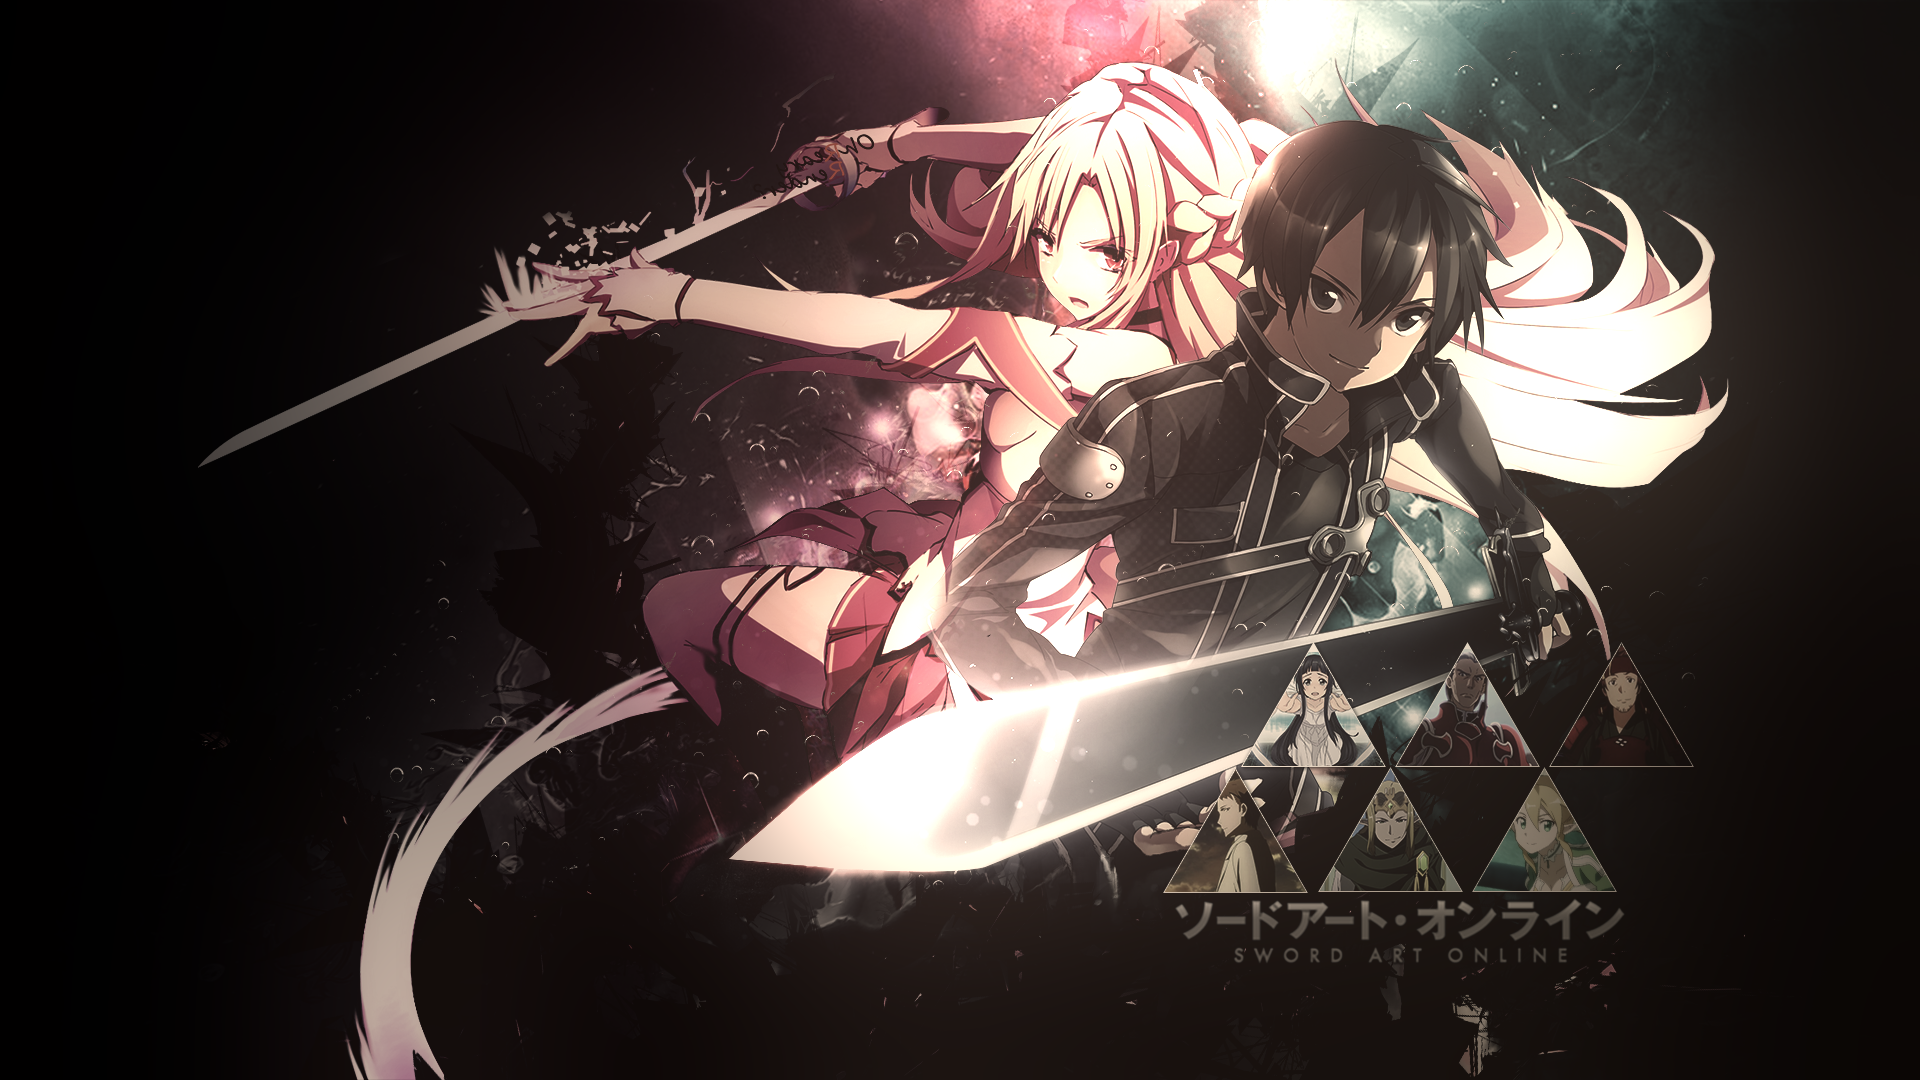 Sword Art Online Background: Sword Art Online Wallpaper #2 By Dani17k On DeviantArt